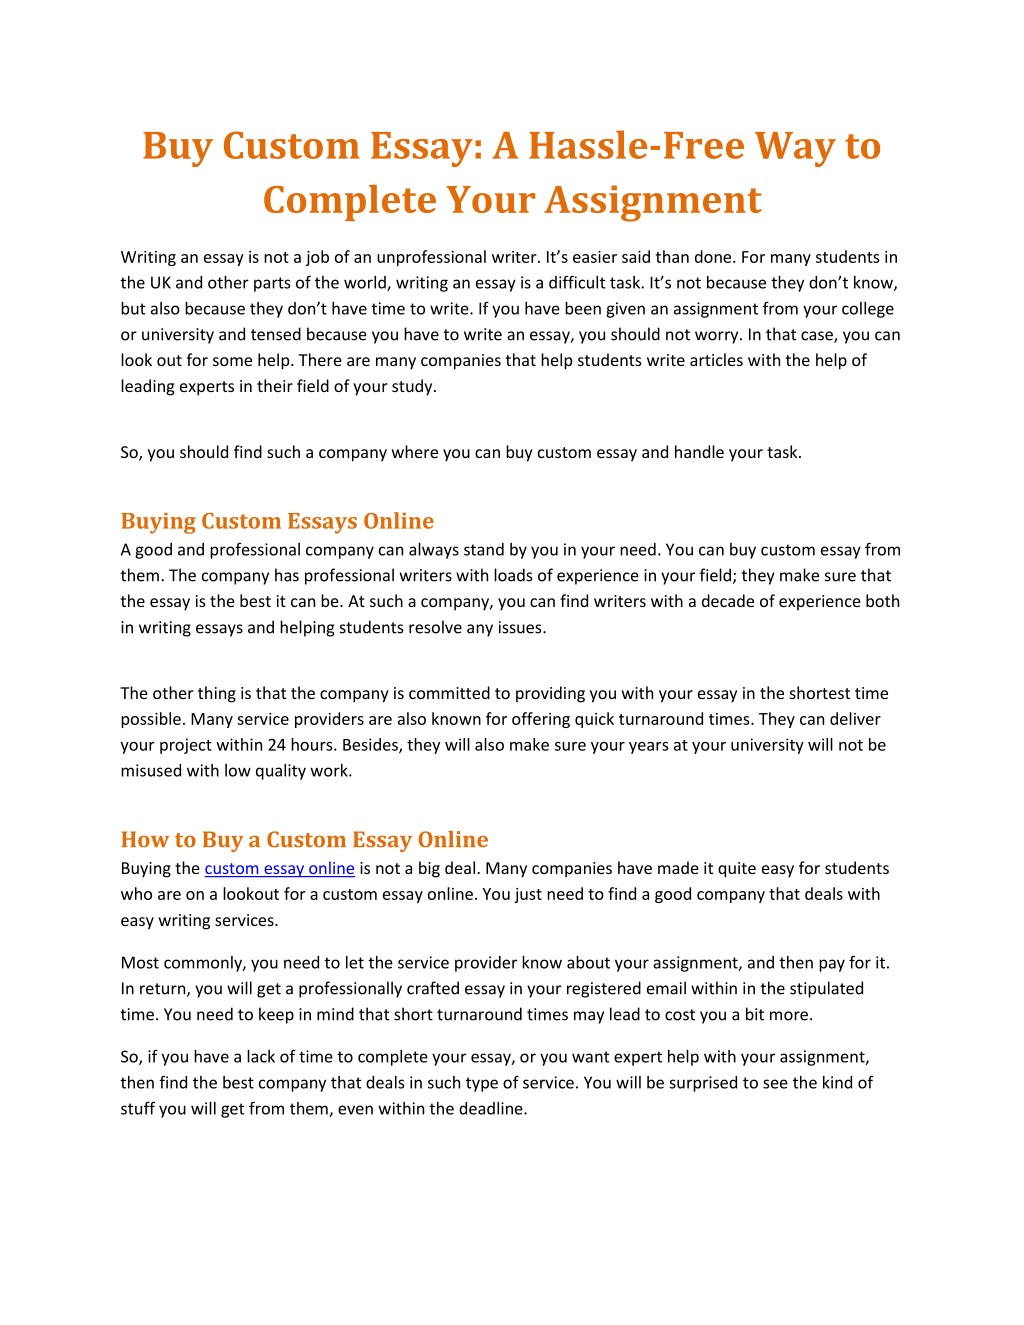 012 Buy Custom Essay Hassle Free Way To Complete L Writing Awesome Writers Uk Service Australia Full